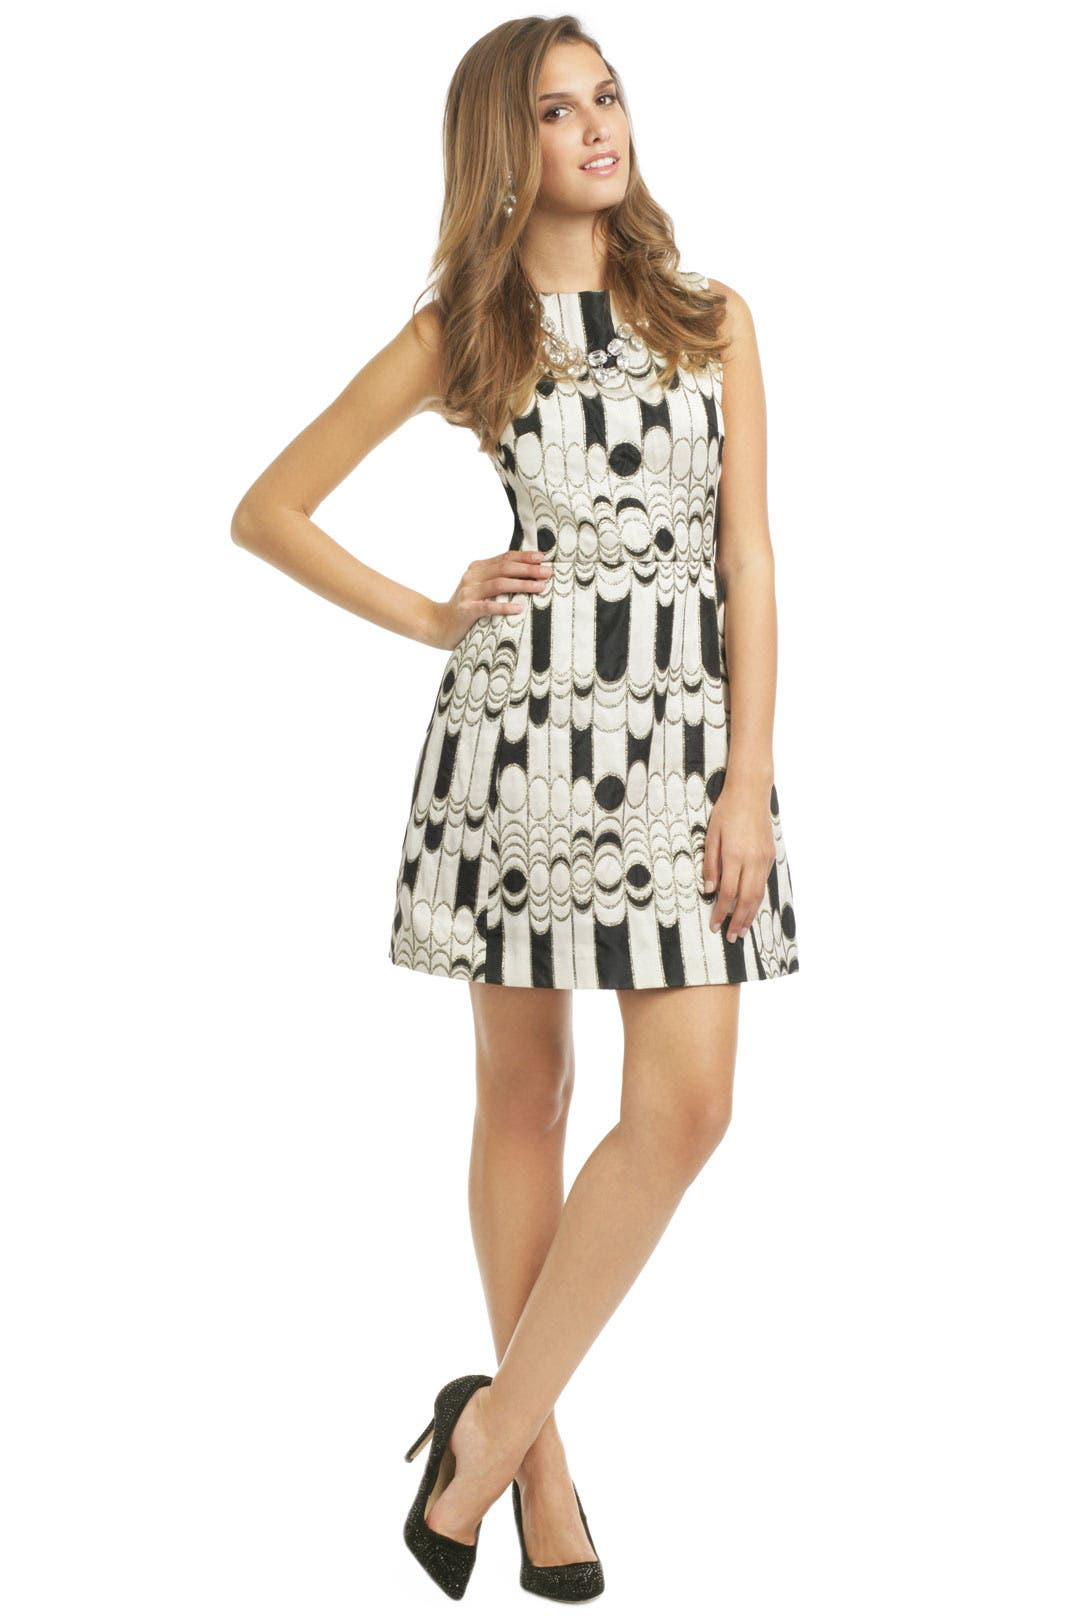 Chessboard Dress by Shoshanna